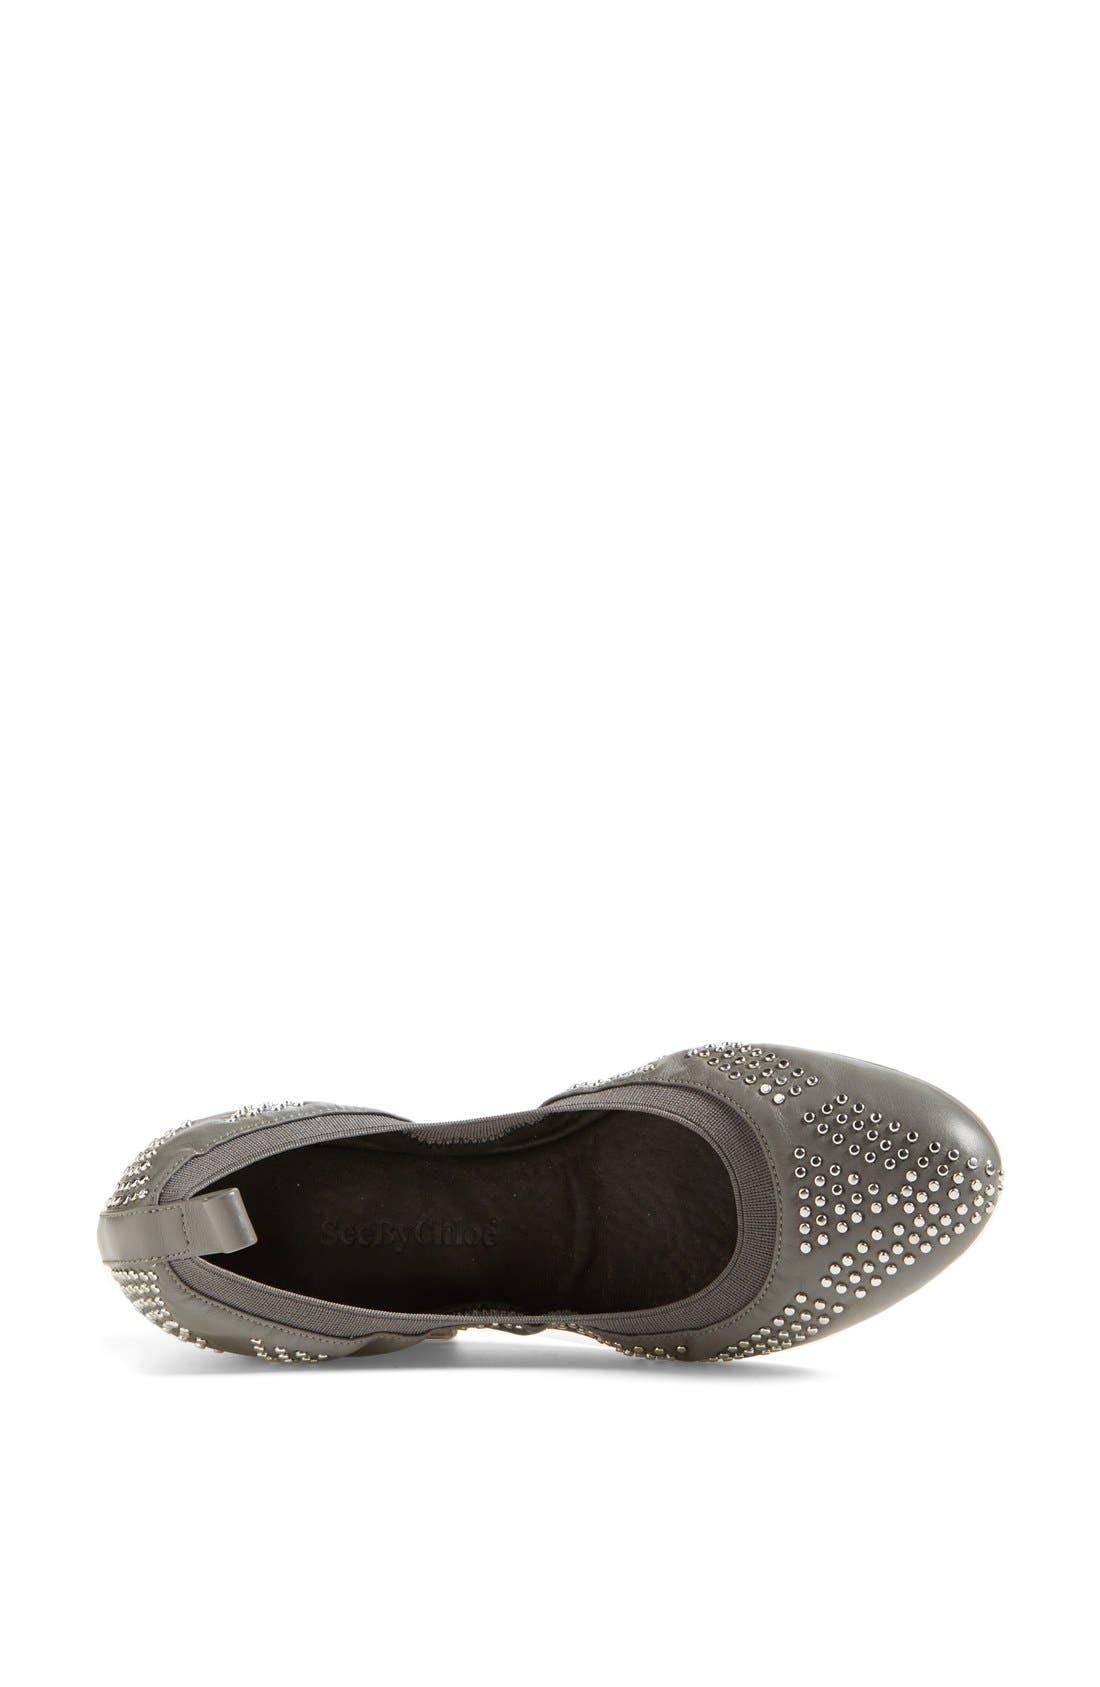 Alternate Image 3  - See by Chloé Studded Leather Ballet Flat (Nordstrom Exclusive) (Women)